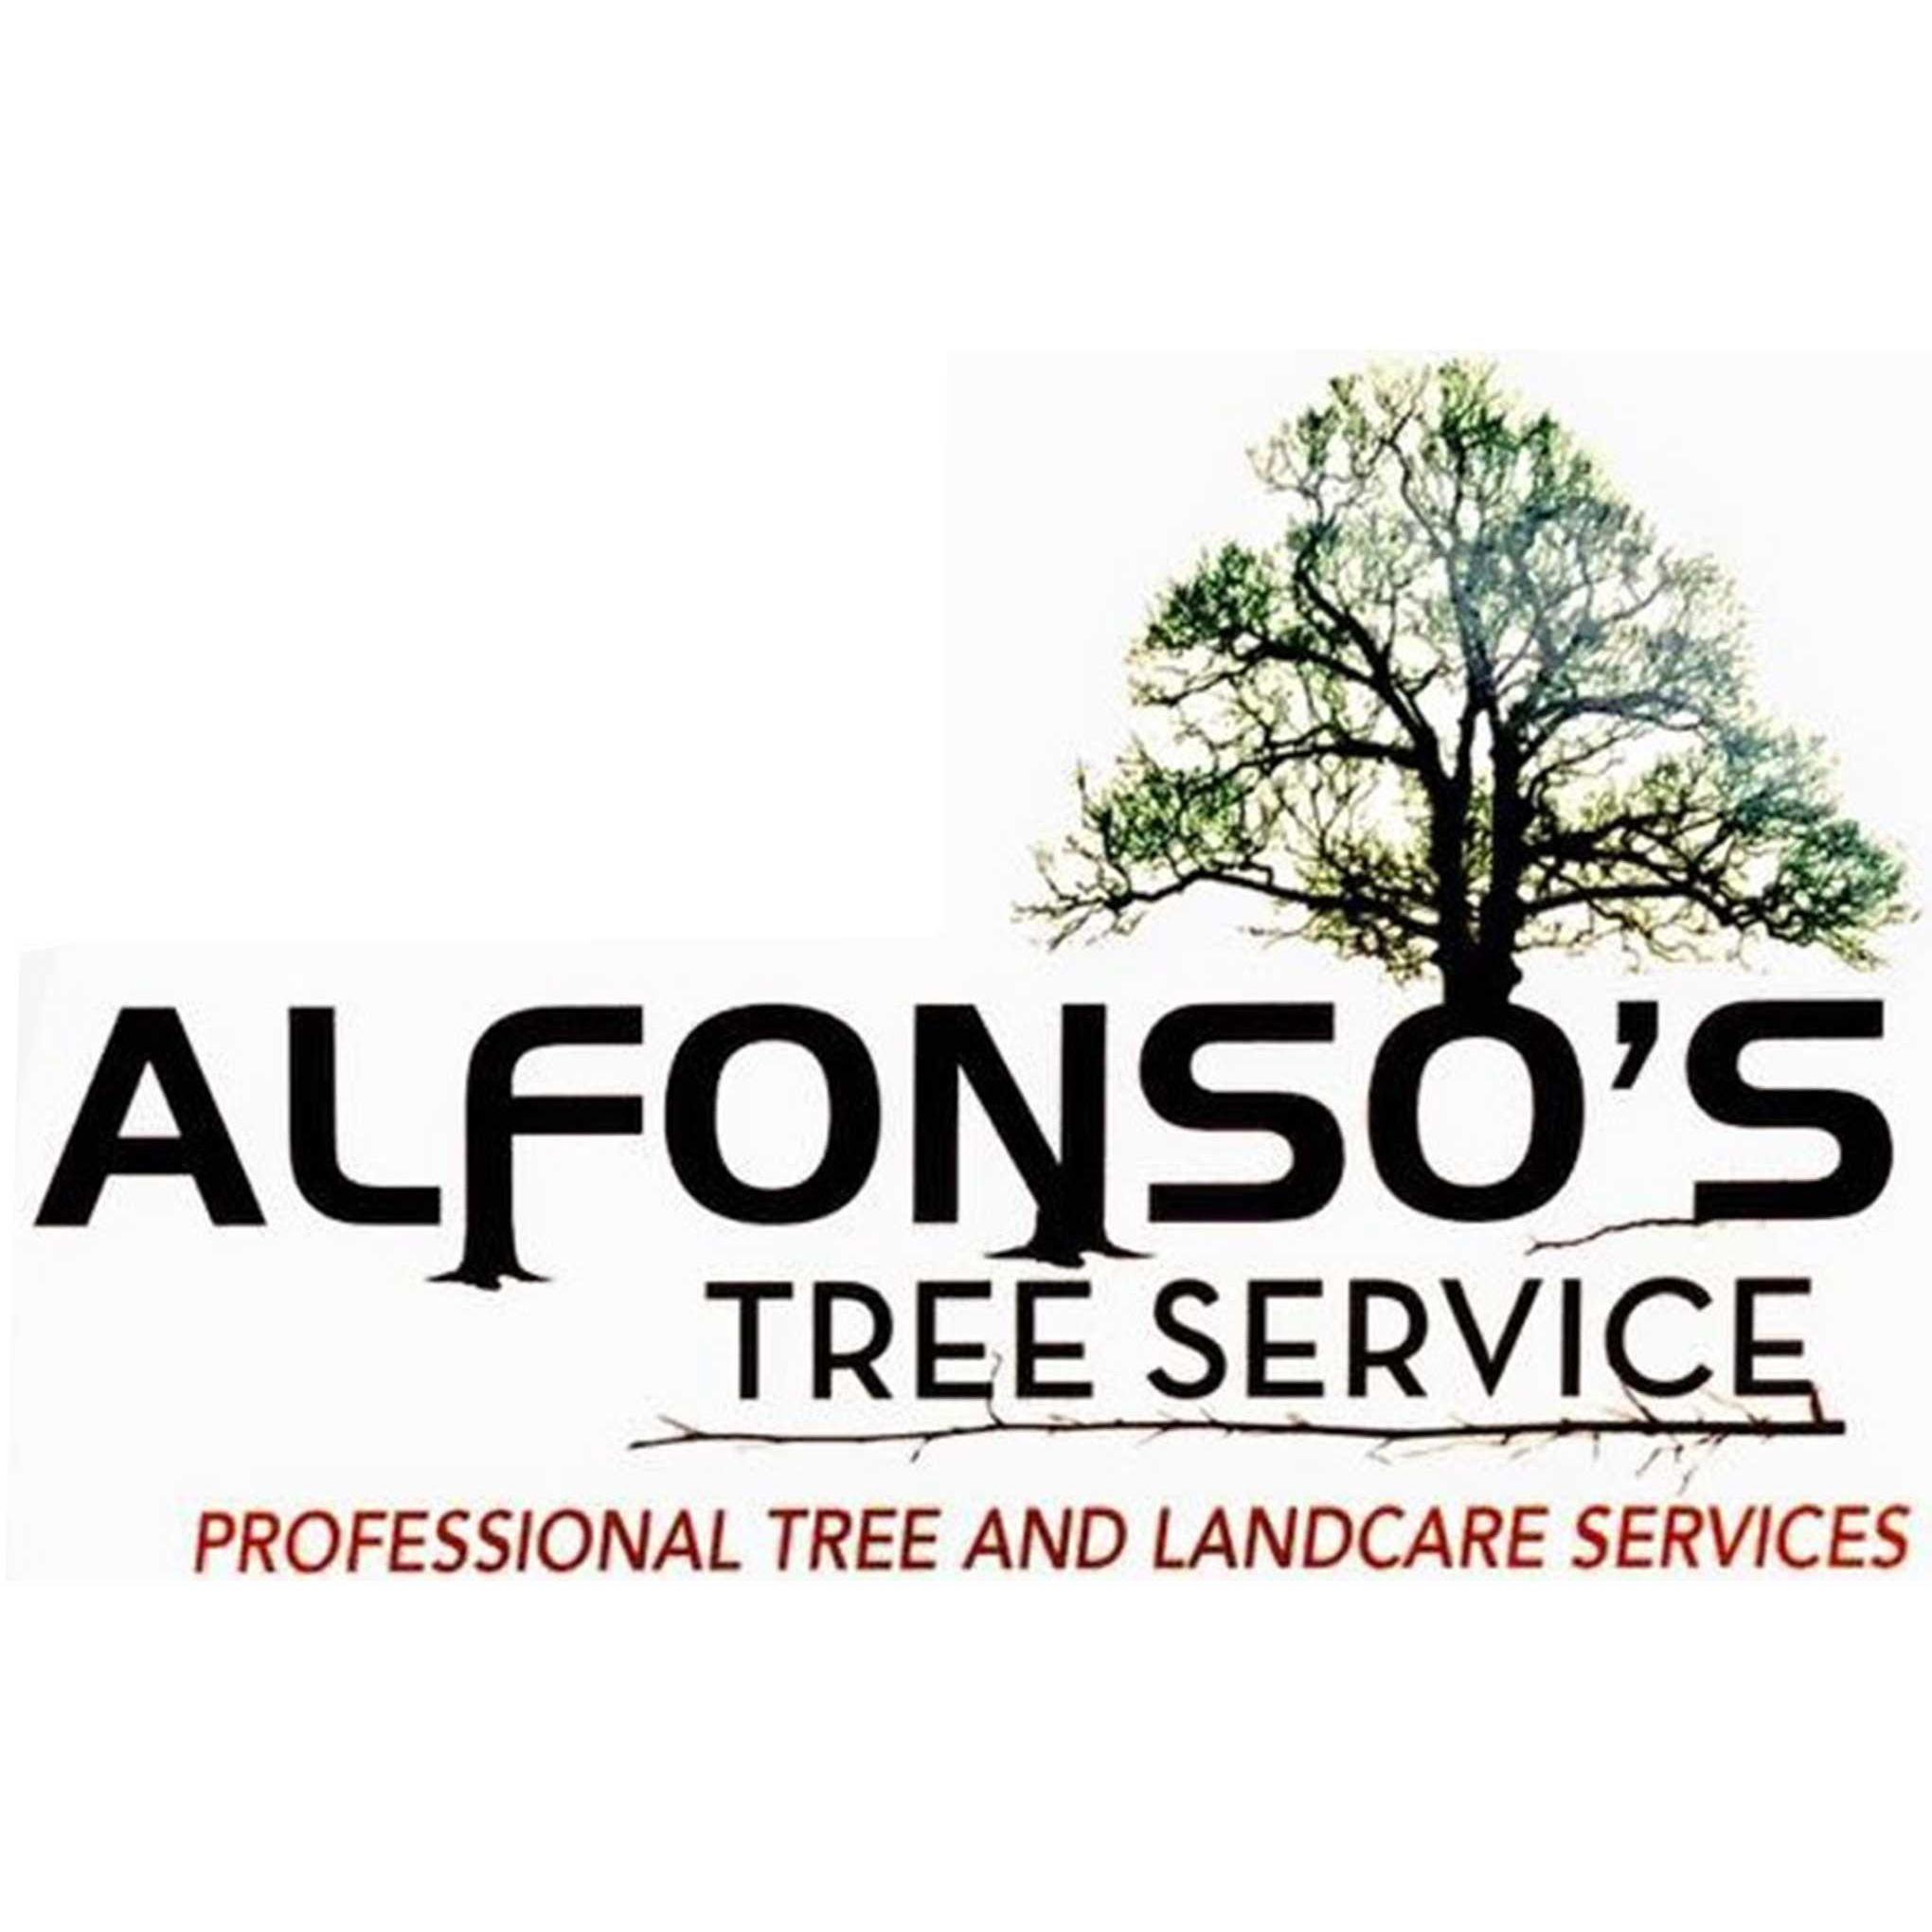 Alfonso's Tree Service, Inc.